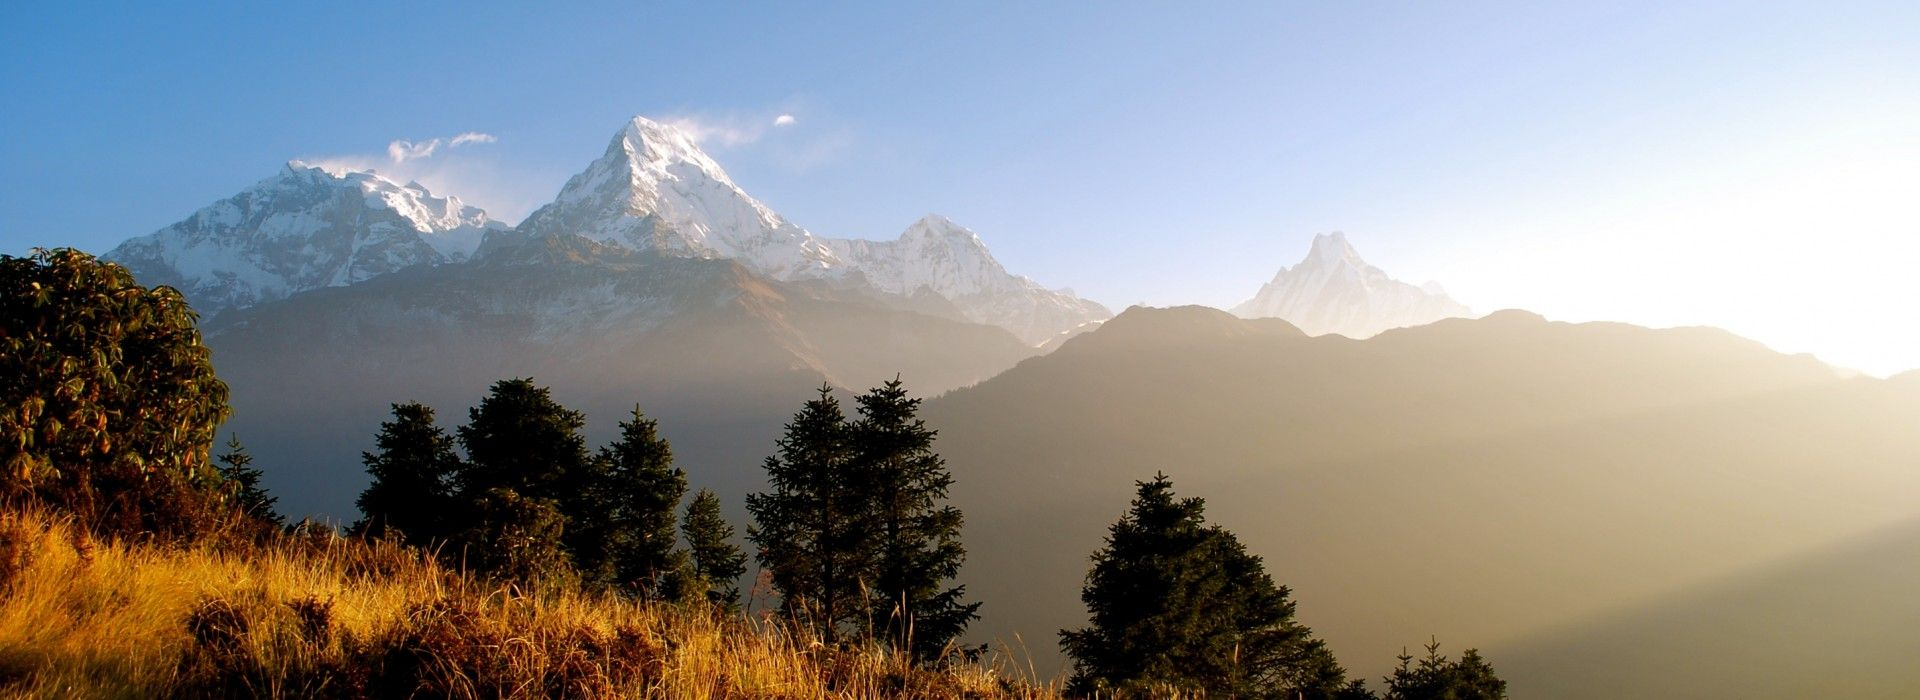 Trekking Tours in Everest Region